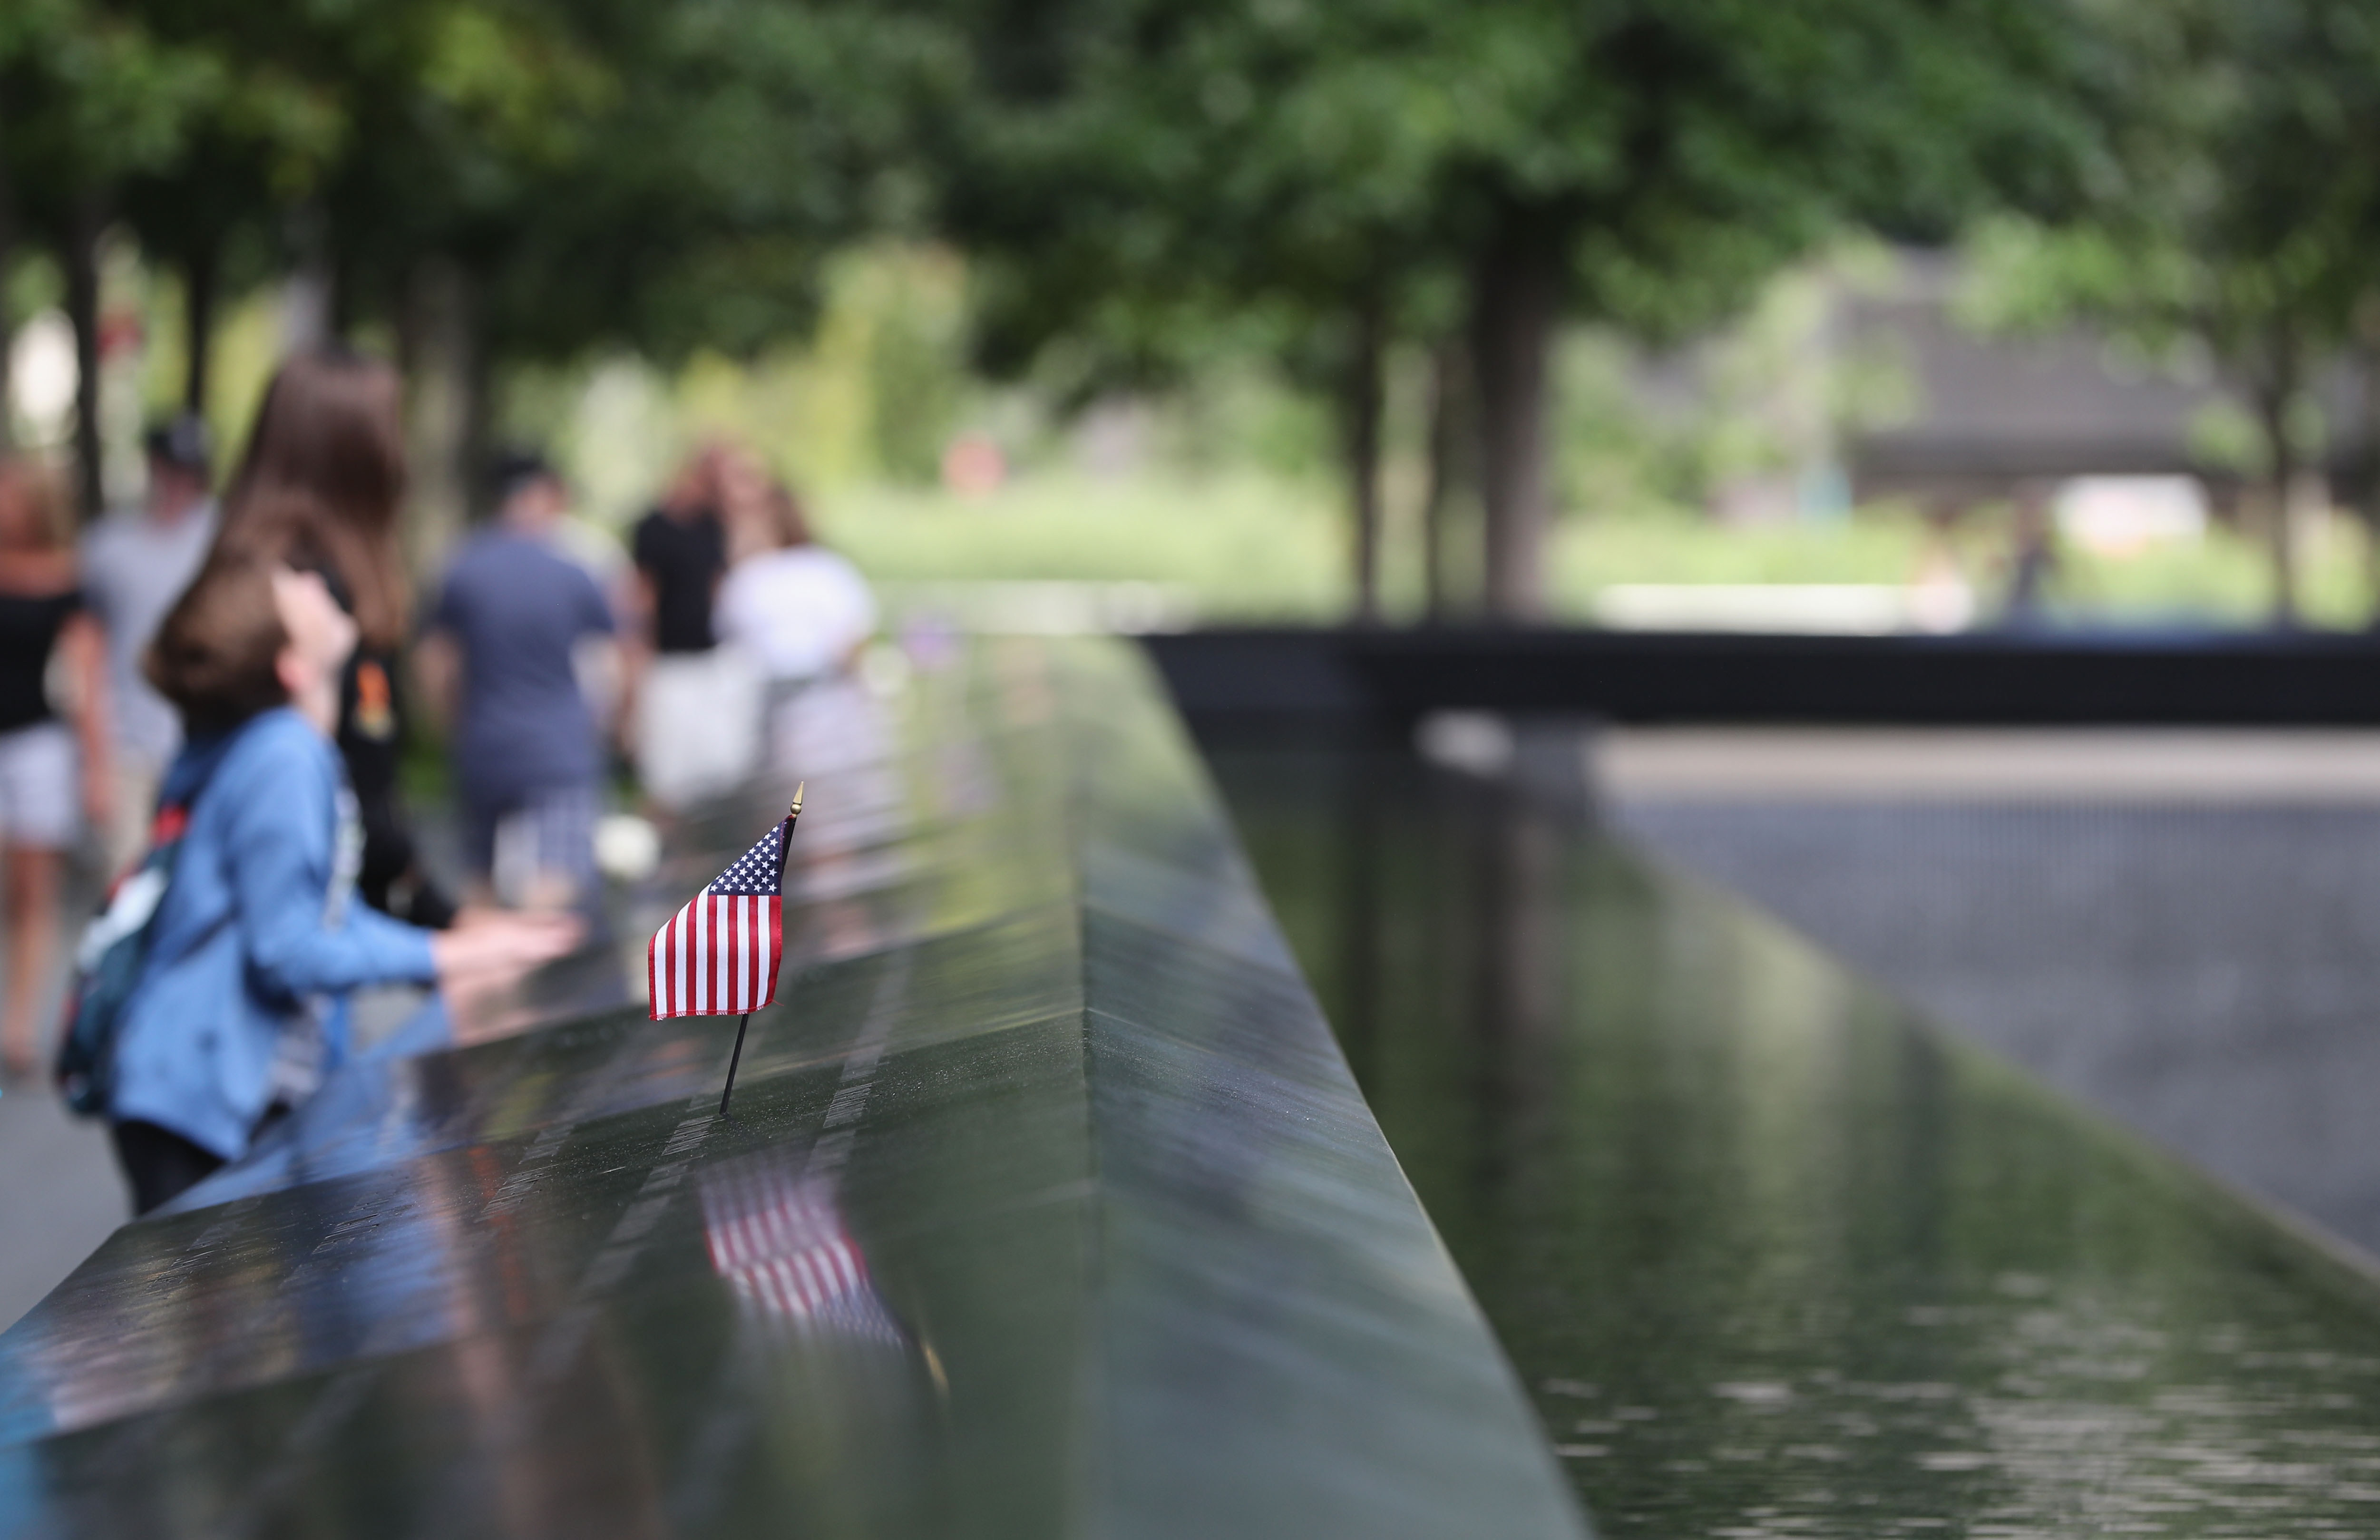 A young boy looks up to One World Trade Center next to a US flag at the the 9/11 memorial site.